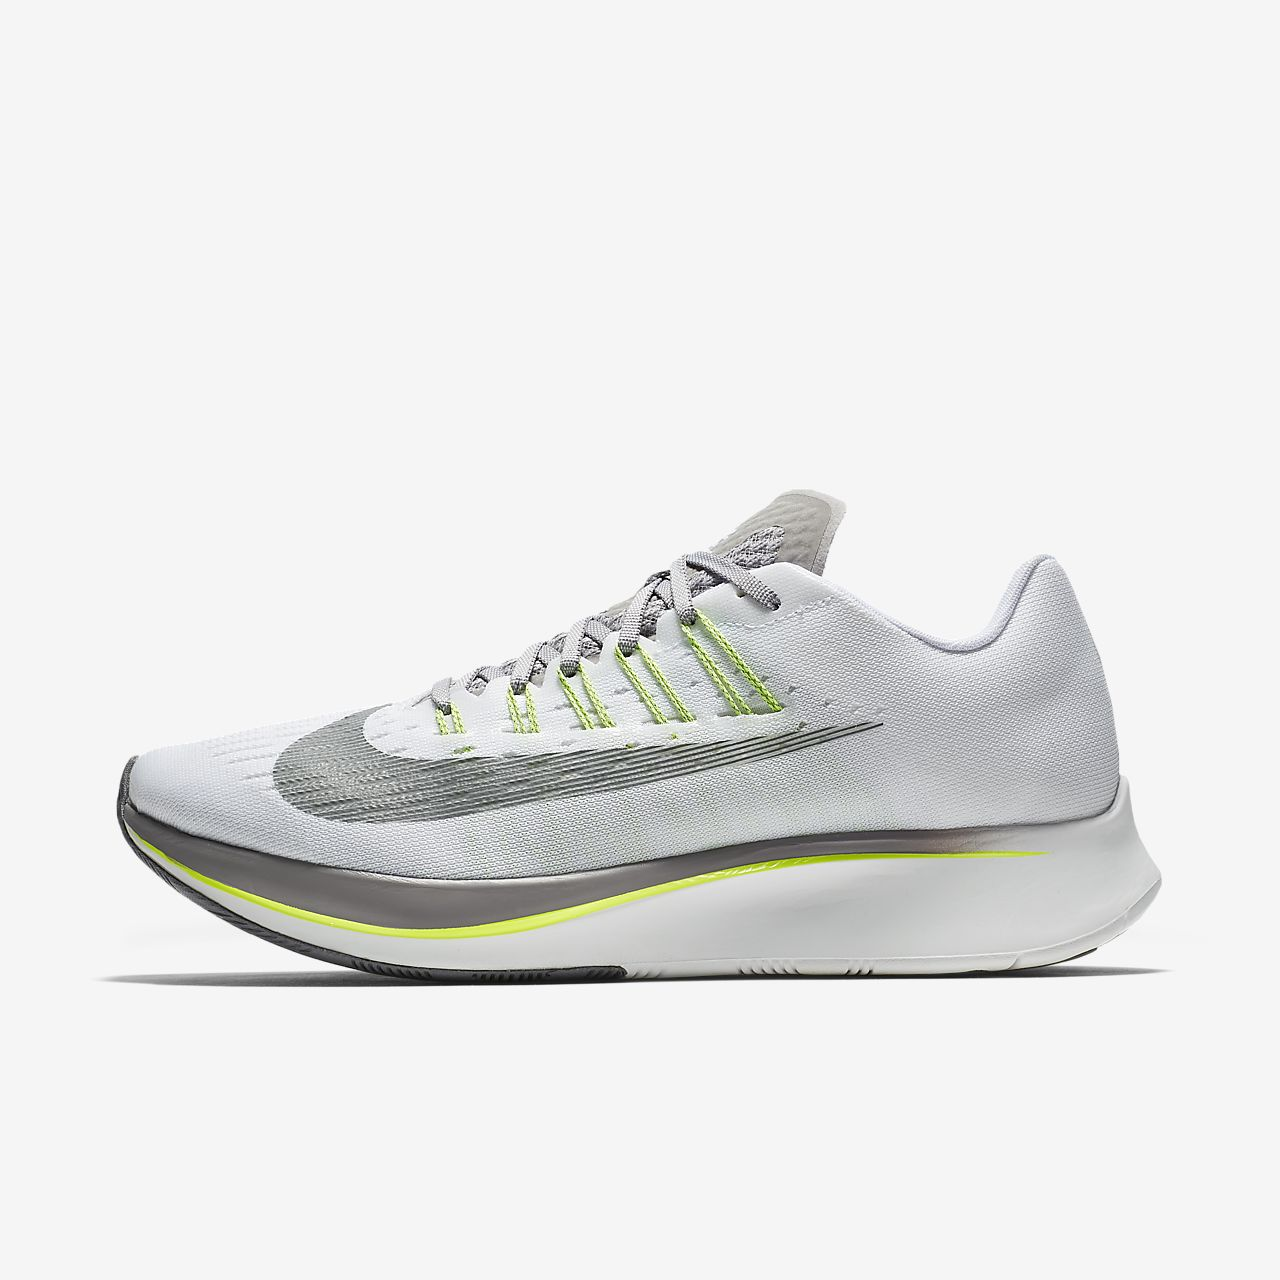 2571edf3736da Nike Zoom Fly Men s Running Shoe. Nike.com